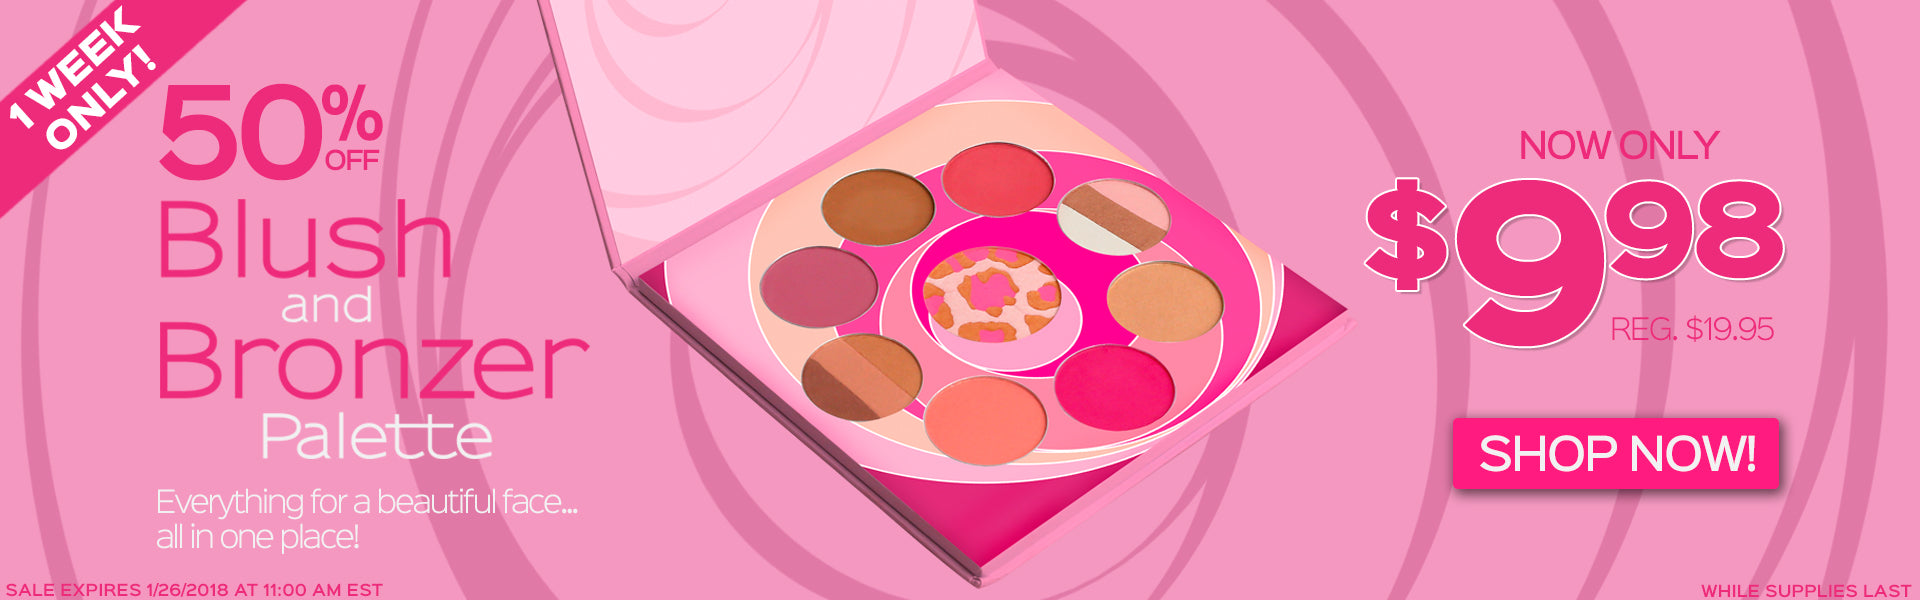 50% Off Blush and Bronzer Palette. Now Only $9.98, Reg. $19.95